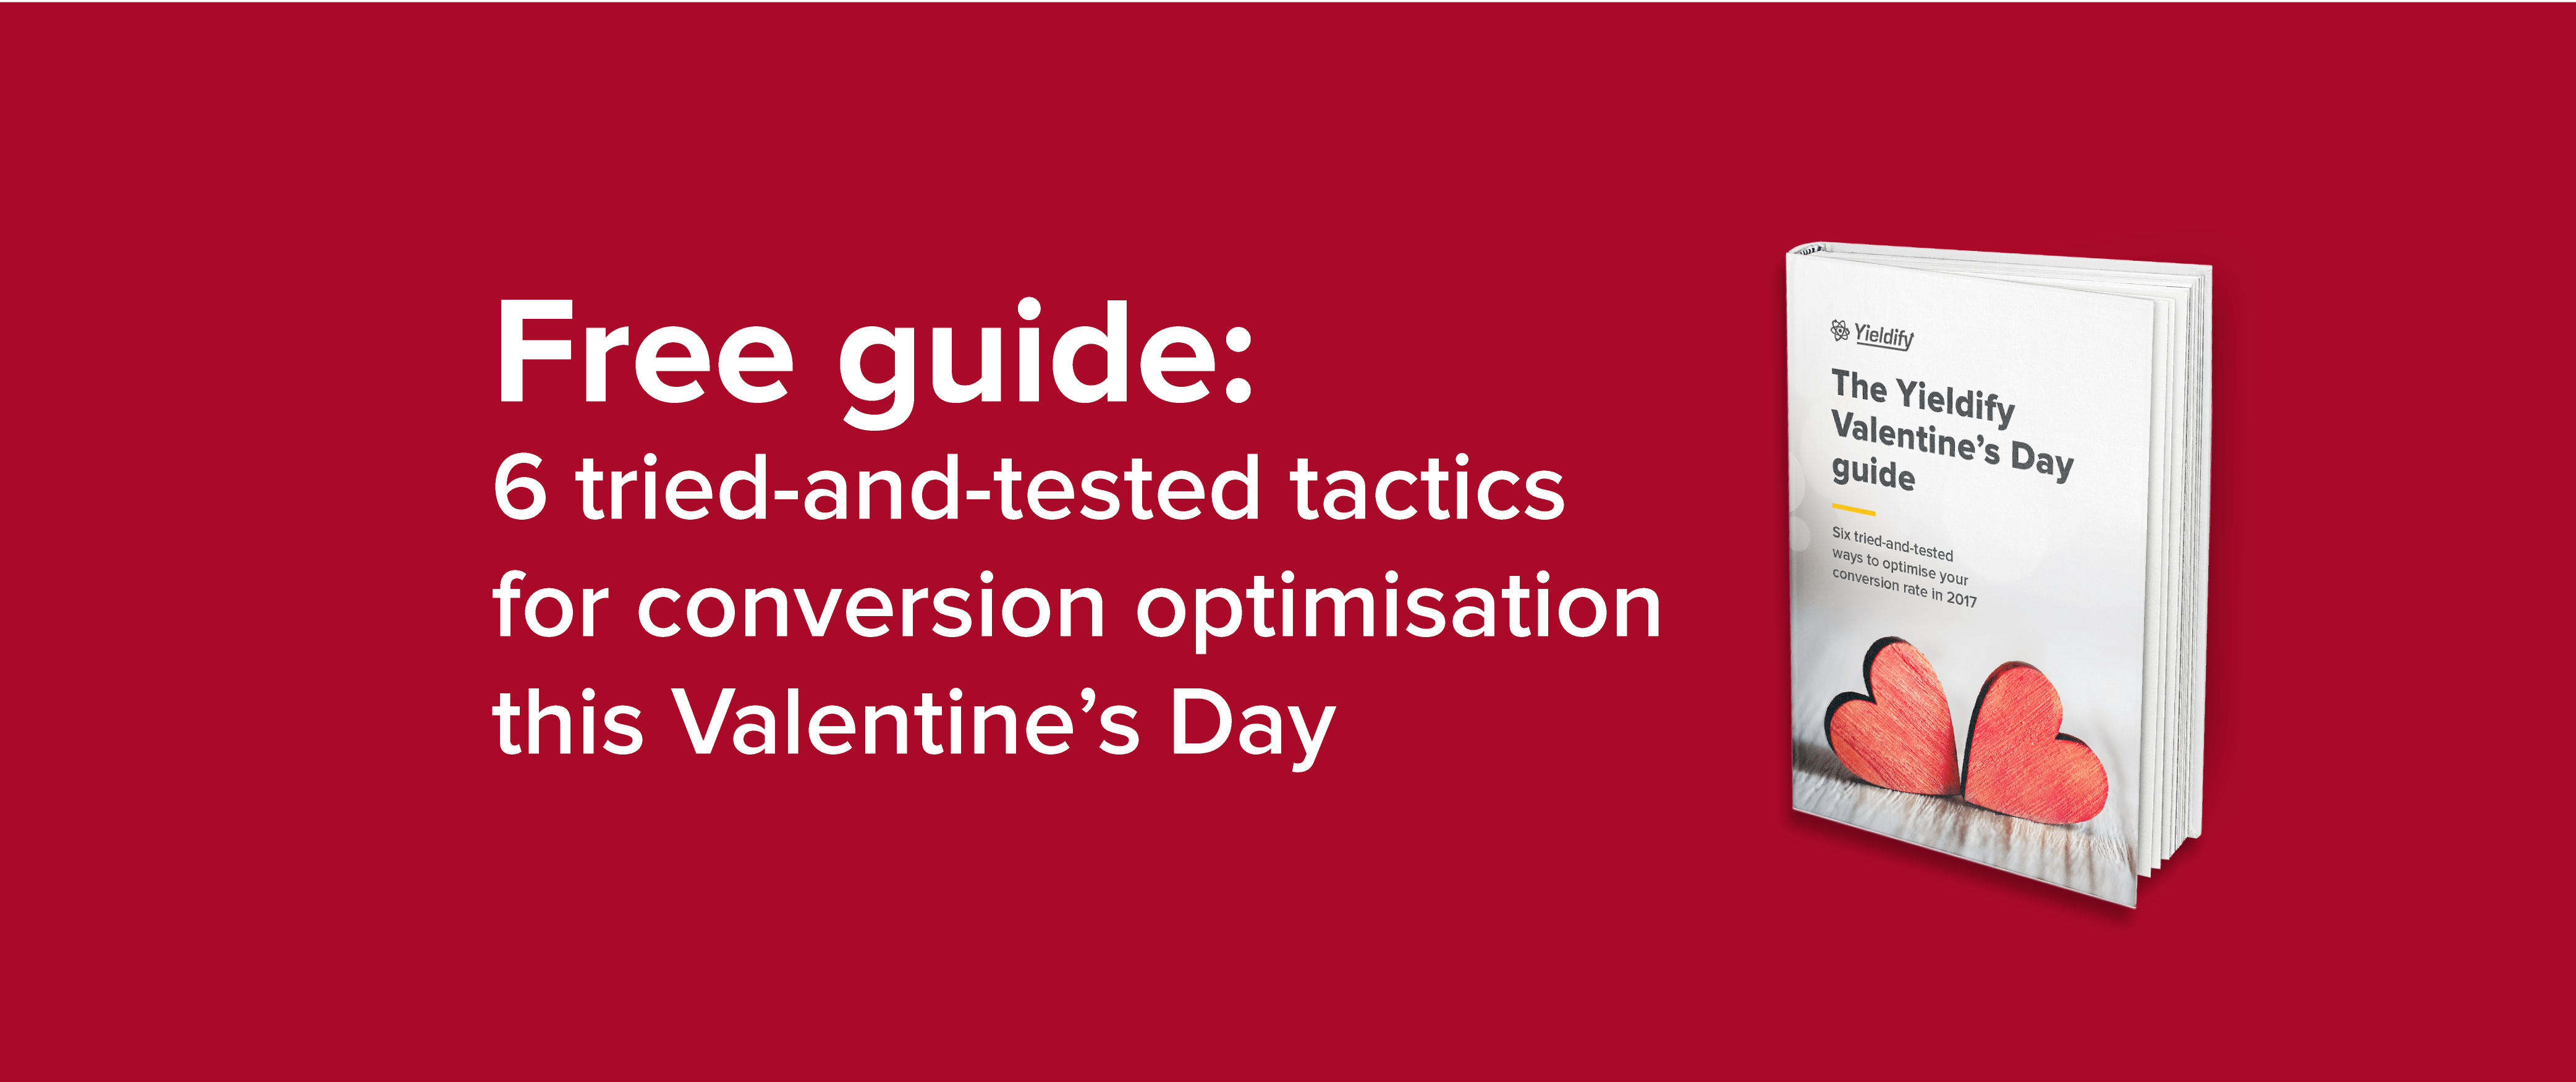 Six tried-and-tested tactics for conversion optimisation this Valentine's Day